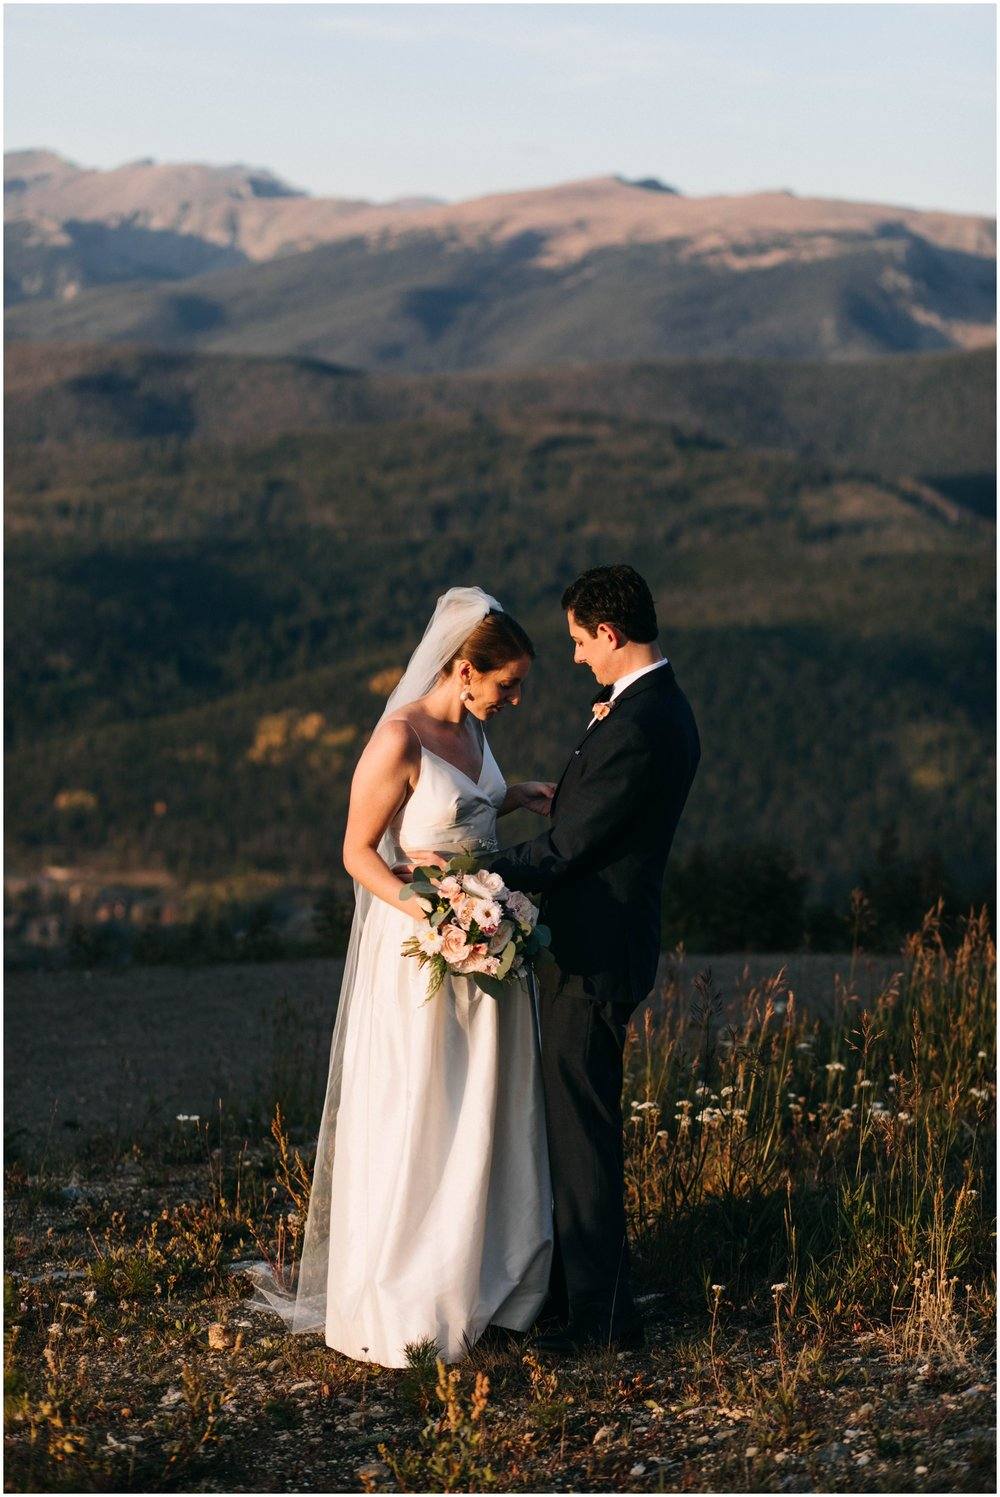 NadegeandJoe_elegant_winter_park_wedding_lodge_at_sunspot_mountain_taylor_powers_0207.jpg